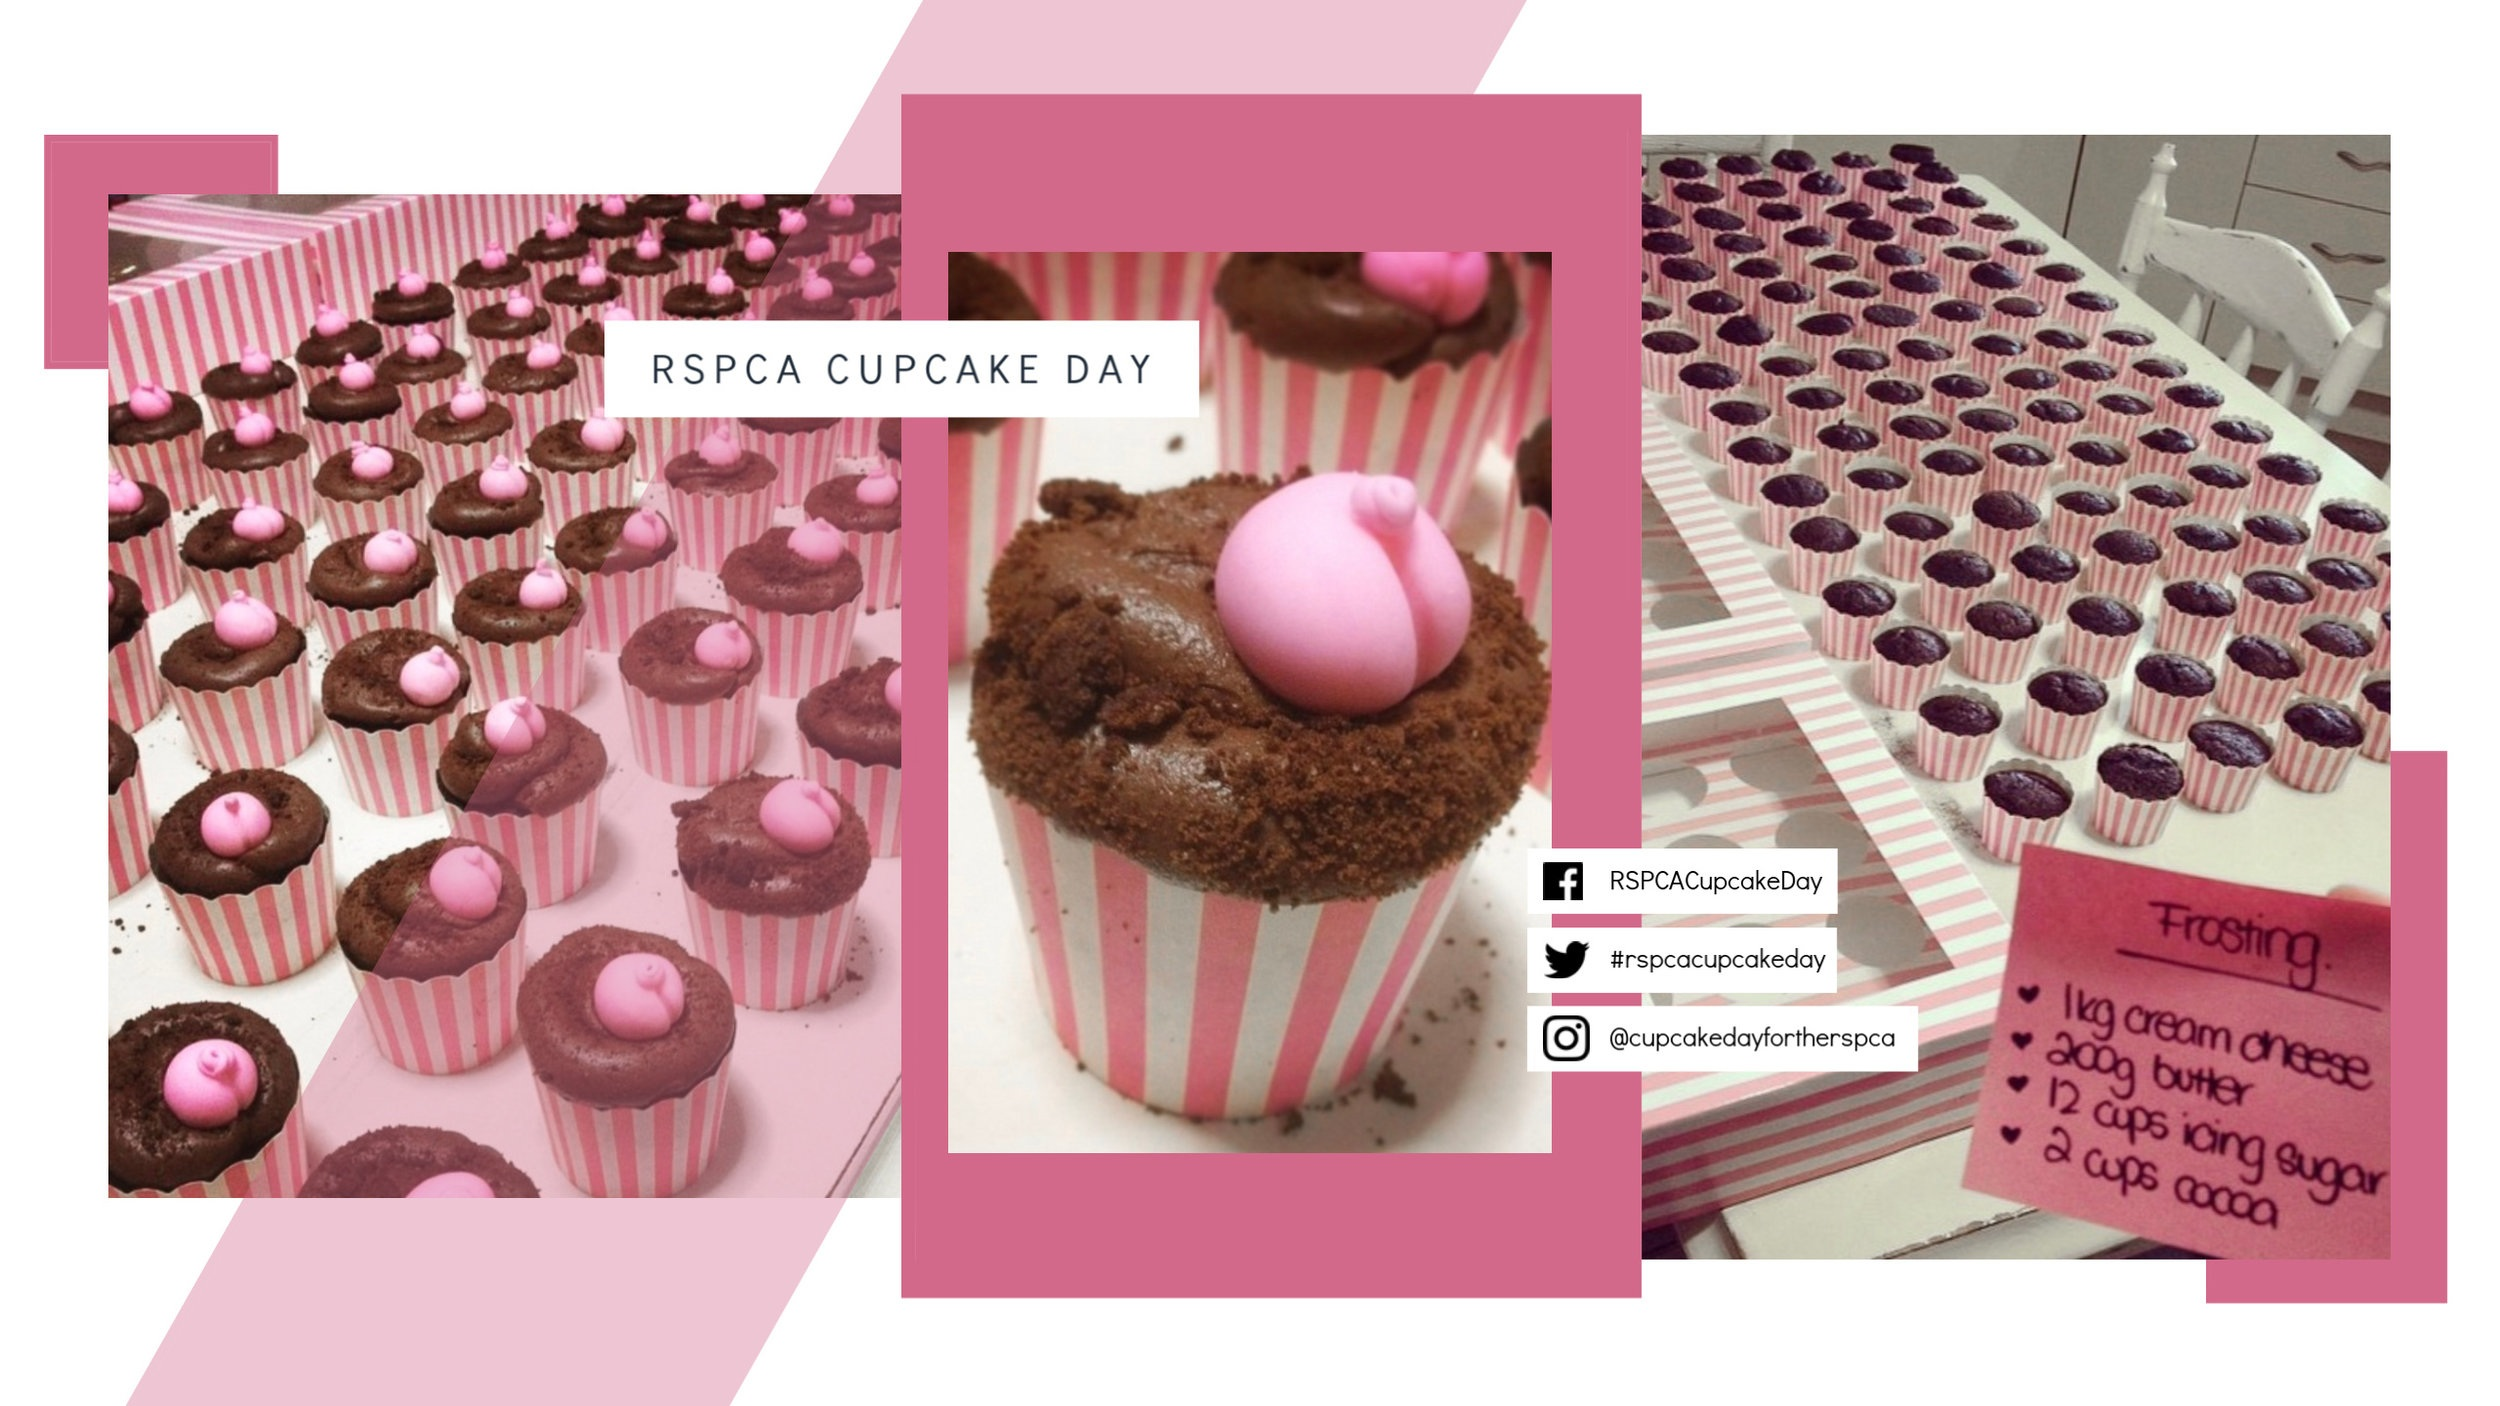 Image above:  Over 100  'cheeky' animal-themed creations baked by Petula for RSPCA Cupcake Day!